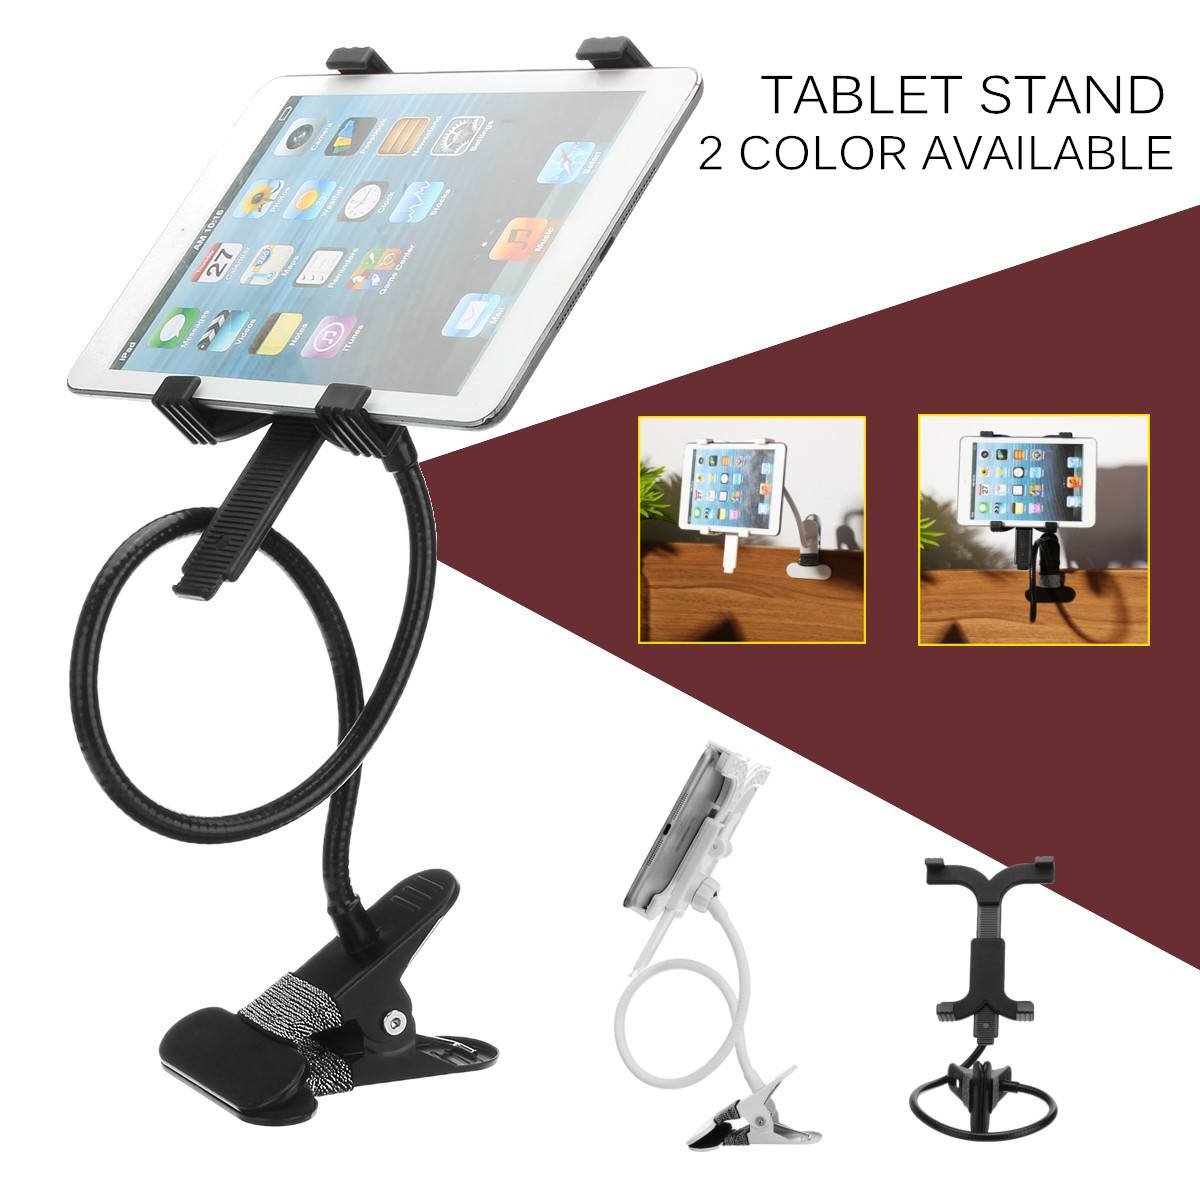 Metal 360 Rotating Tablet Stand Bed Desk Mount Holder Clamp Tablet Bracket Organizer Tablet Accessories 7 Inch 10 Inch 2 Colors